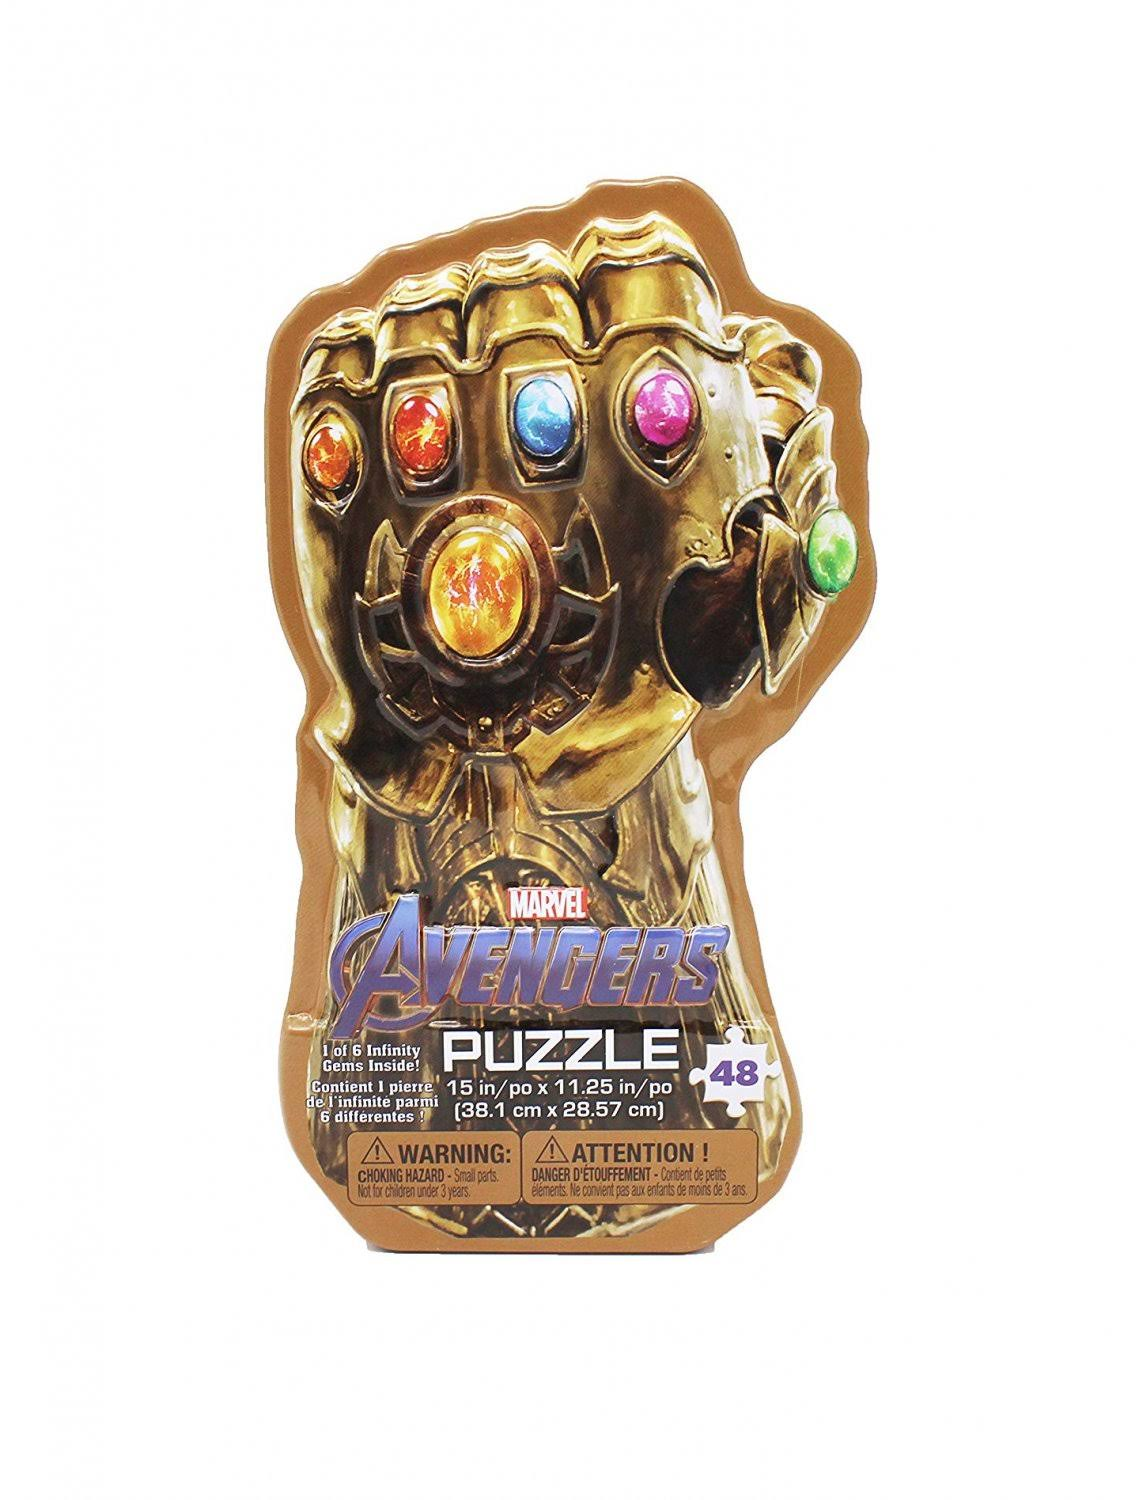 Marvel's Avengers: Infinity War Gauntlet Tin with Surprise Puzzle & I